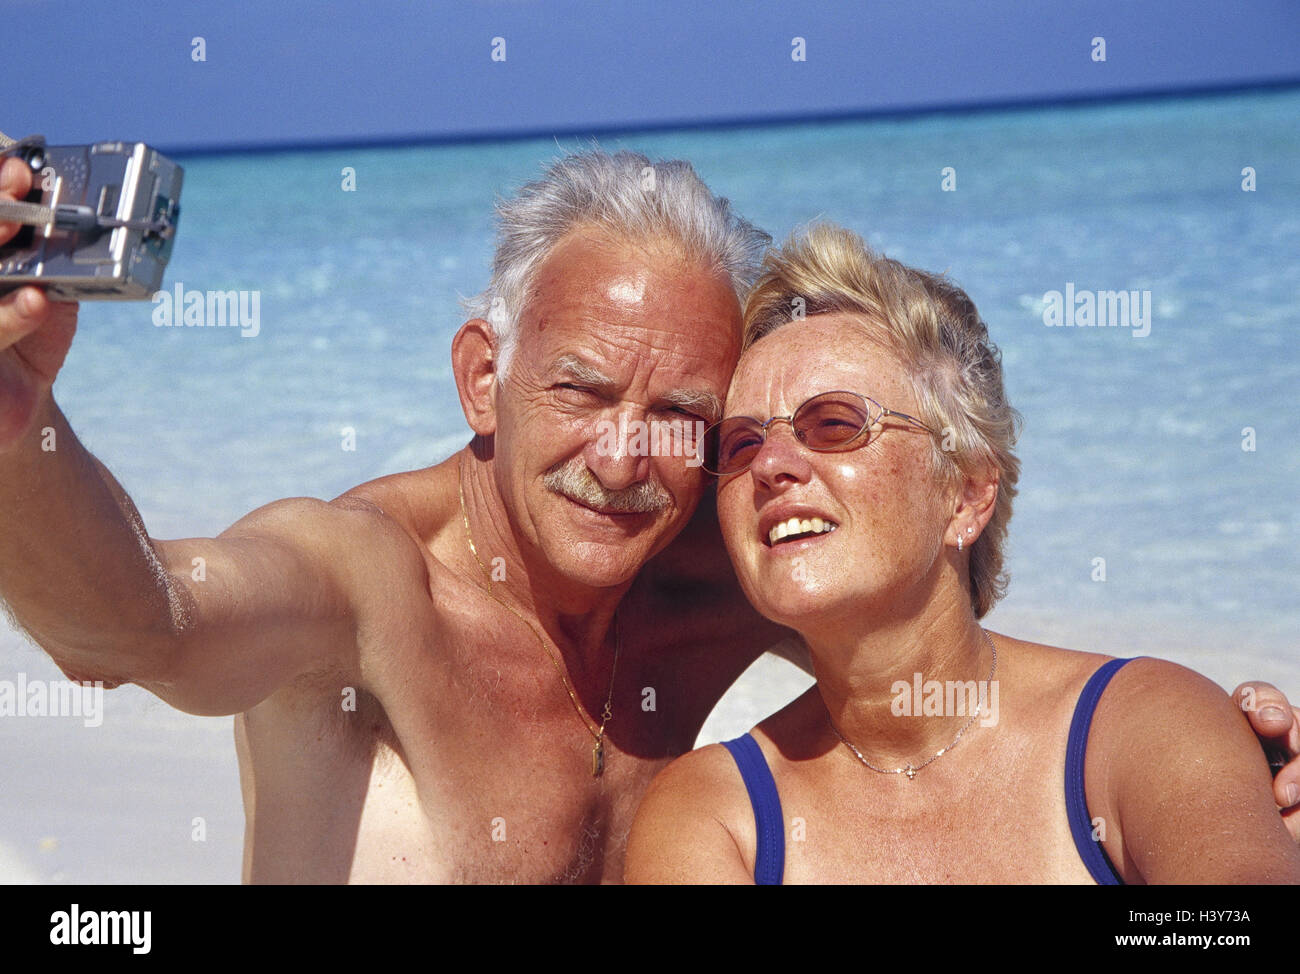 Beach, Senior couple, swimwear, camera, selfportrait vacation, leisure time, retirement, old age pension, pension, - Stock Image